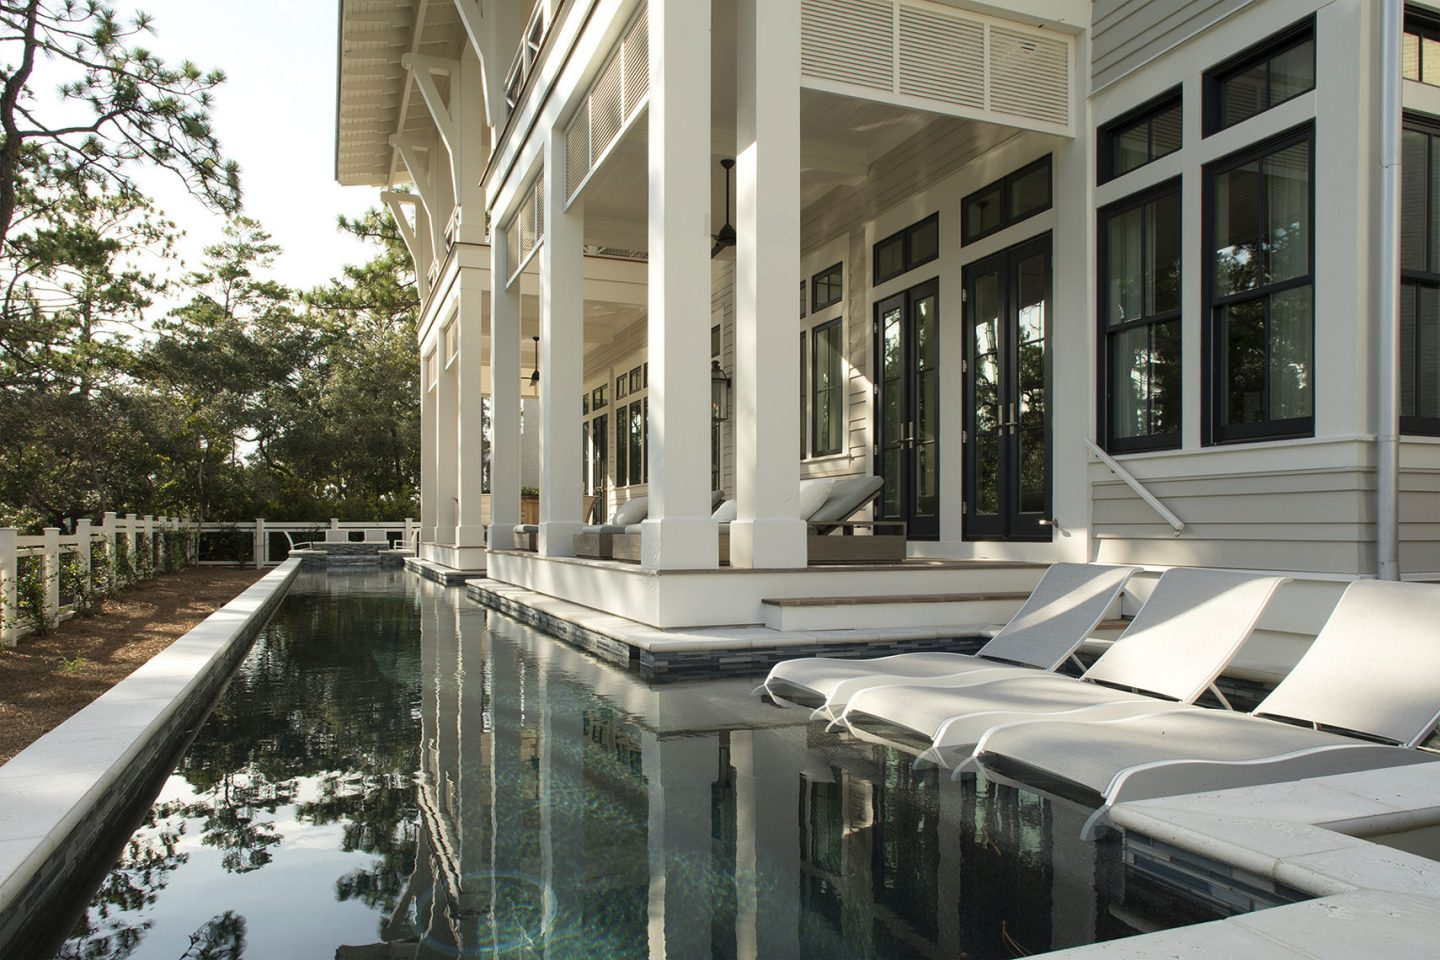 Luxurious pool design inspiration from a magnificent coastal style classic home by architect Geoff Chick. #luxurypool #pooldesign #coastalstyle